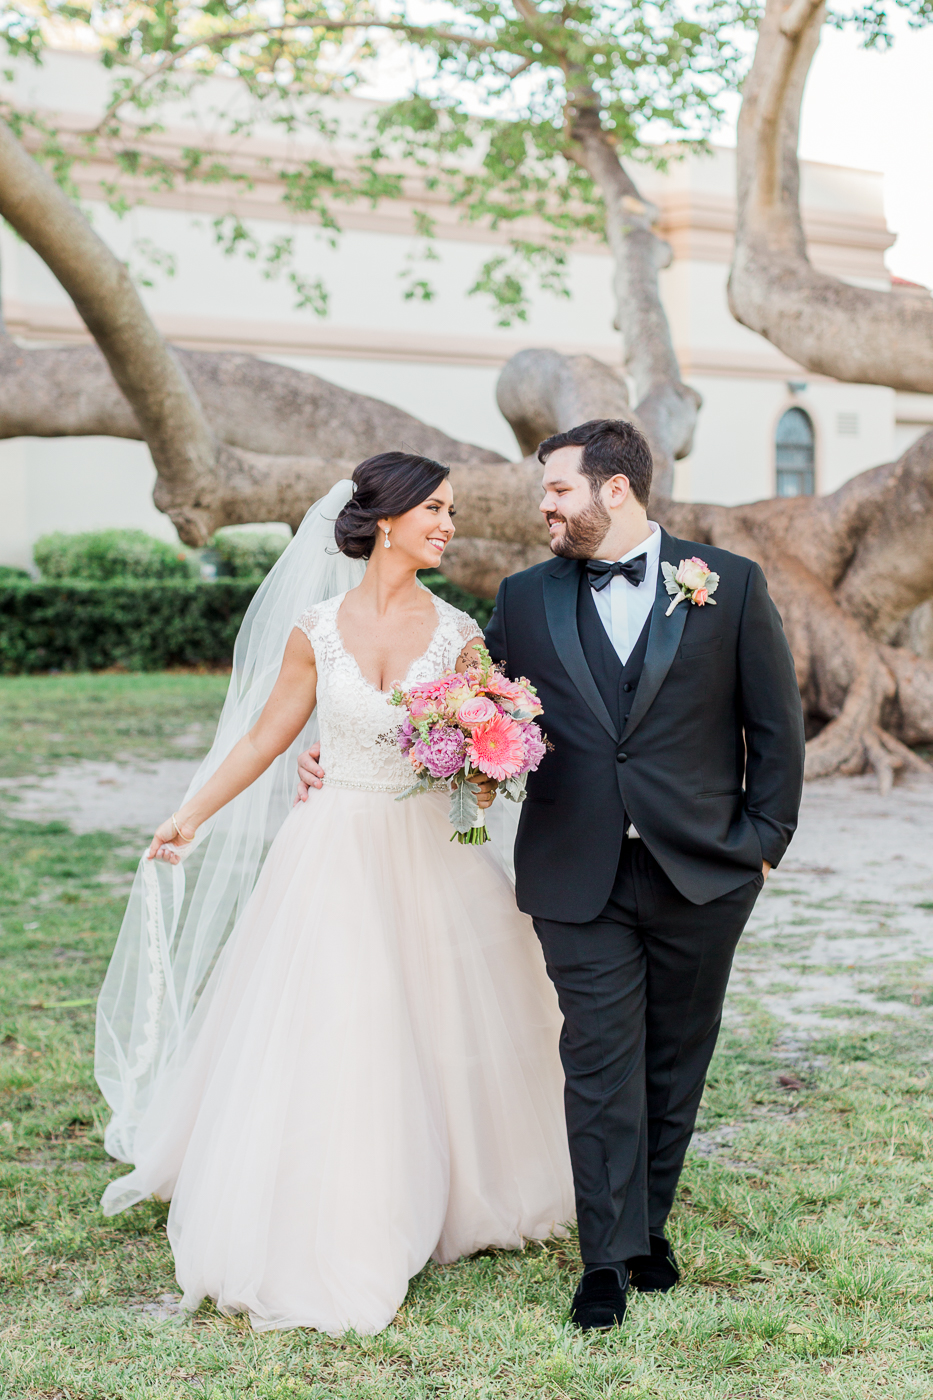 lauren + Thomas - St. petersburg, florida